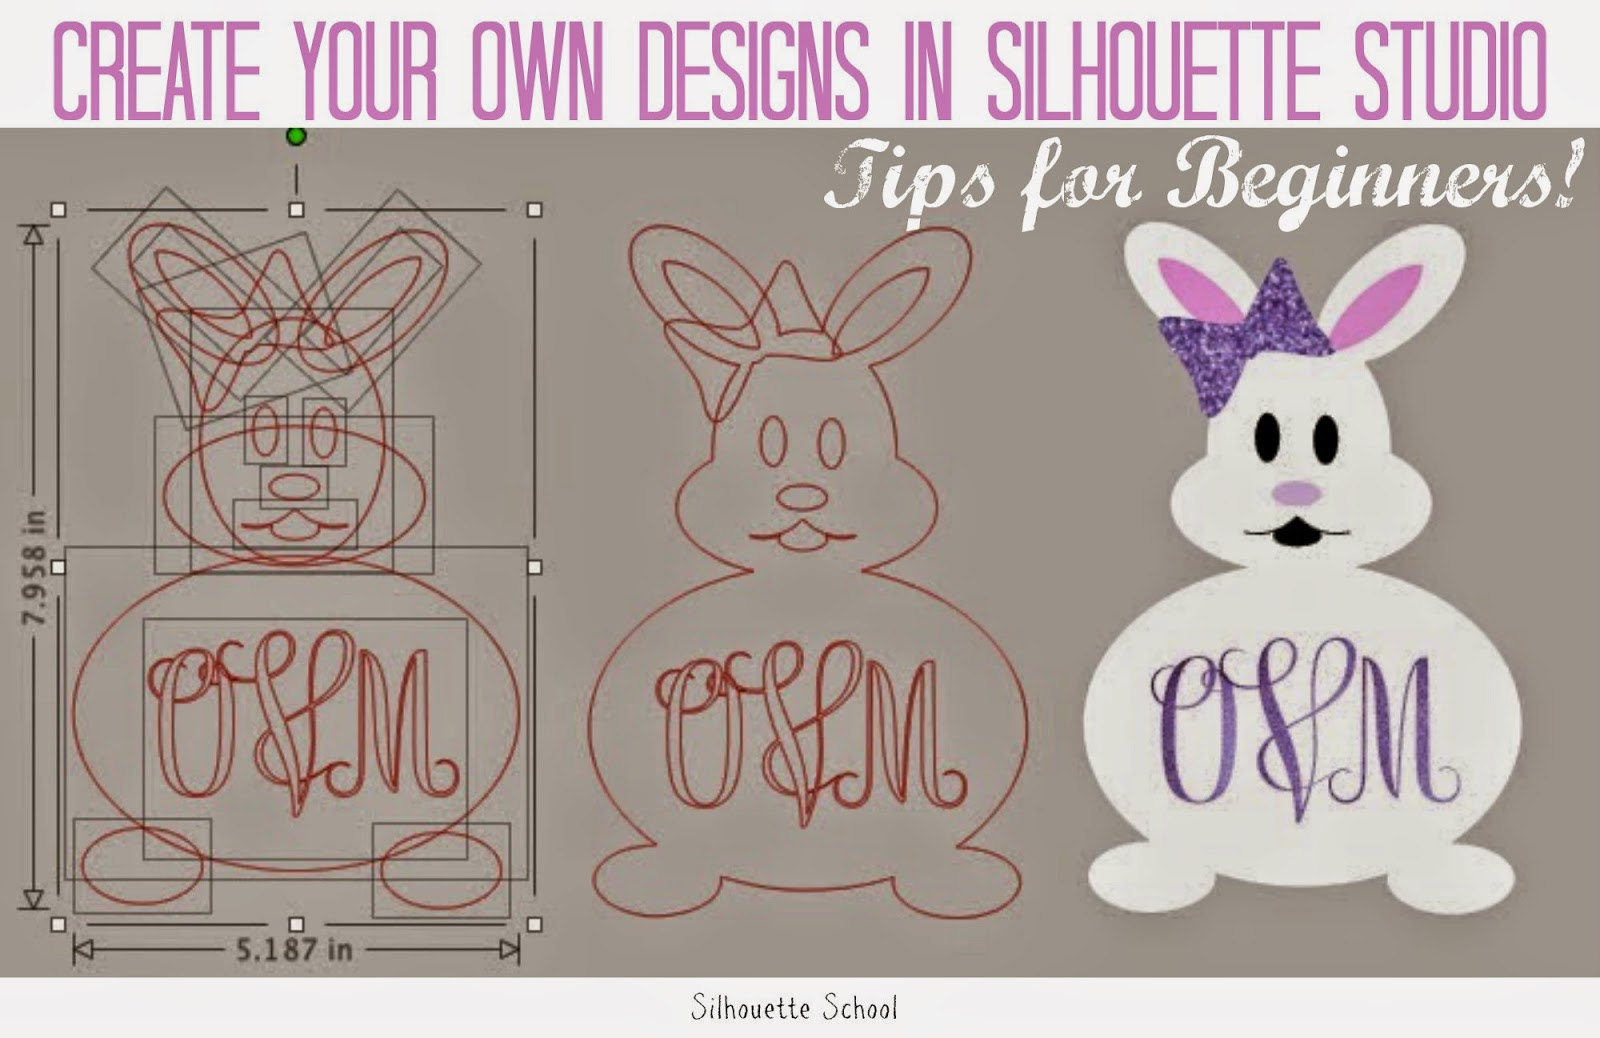 Silhouette Studio, tips, beginners, designing your own shapes